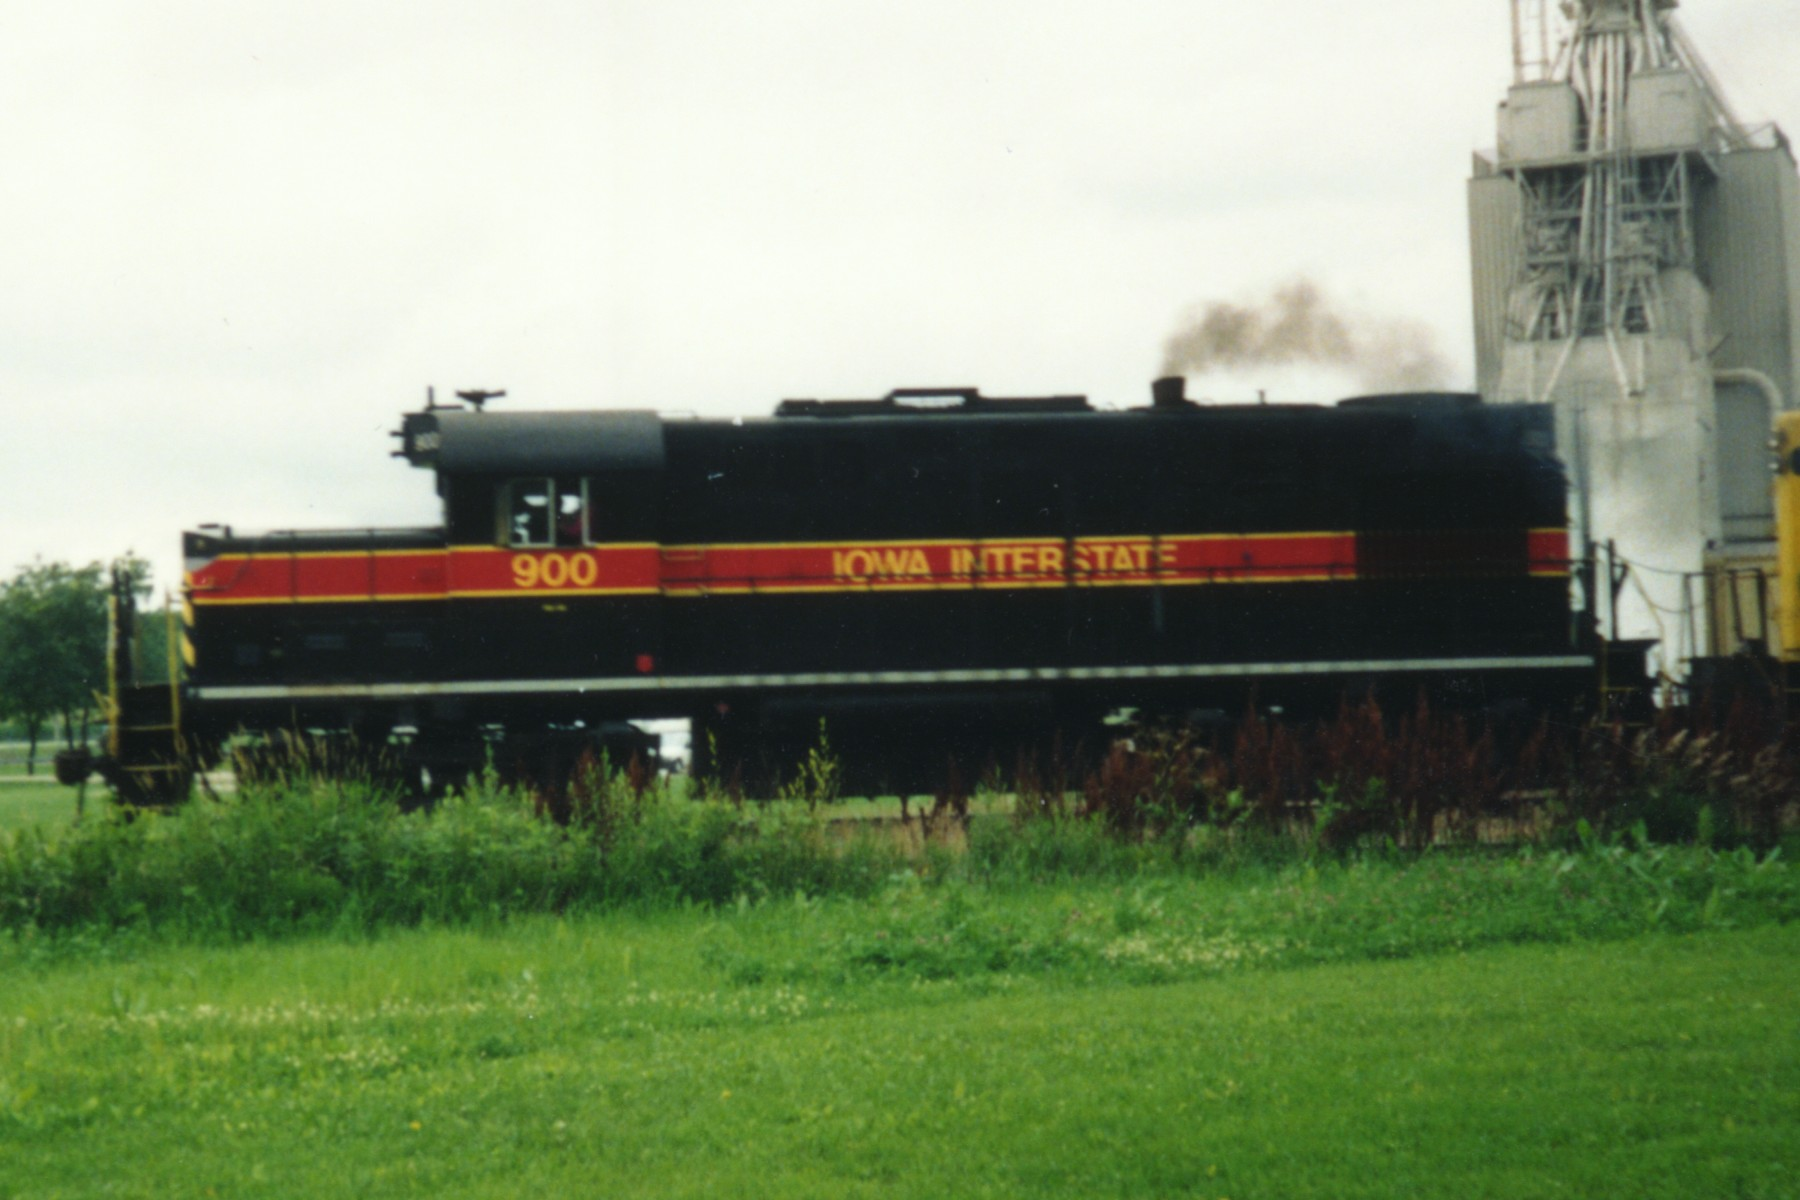 IAIS 900 at Altoona, IA on 01-Jul-1992